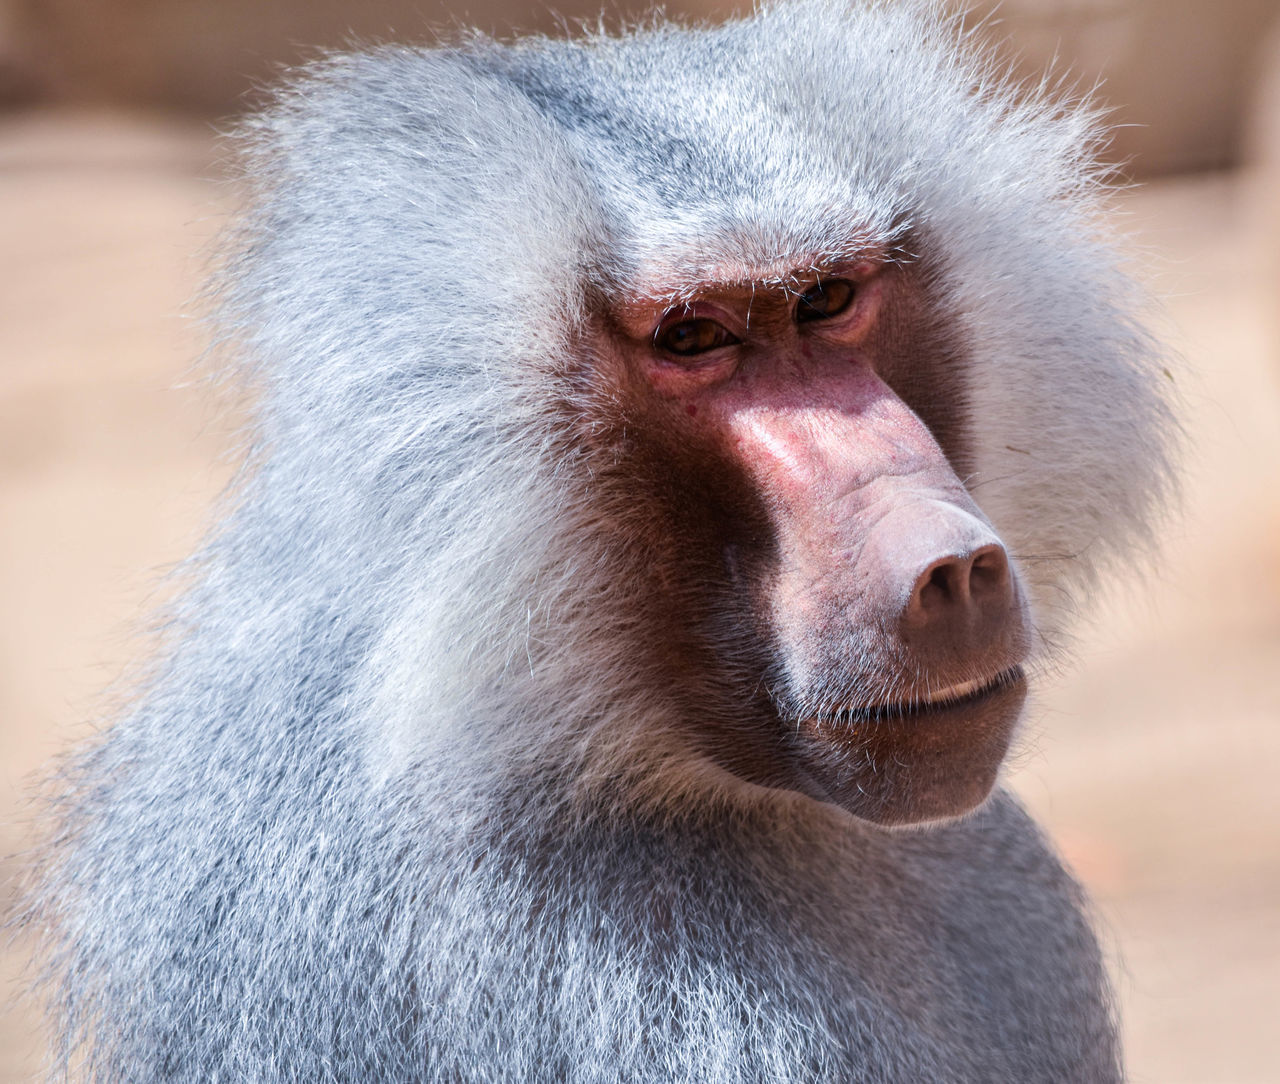 baboon Taking Photos Relaxing Check This Out Photography Learn & Shoot: Leading Lines تصويري  Animals Eyes الرياض تصويري_نيكون السودان Photographs Check This Out Baboon